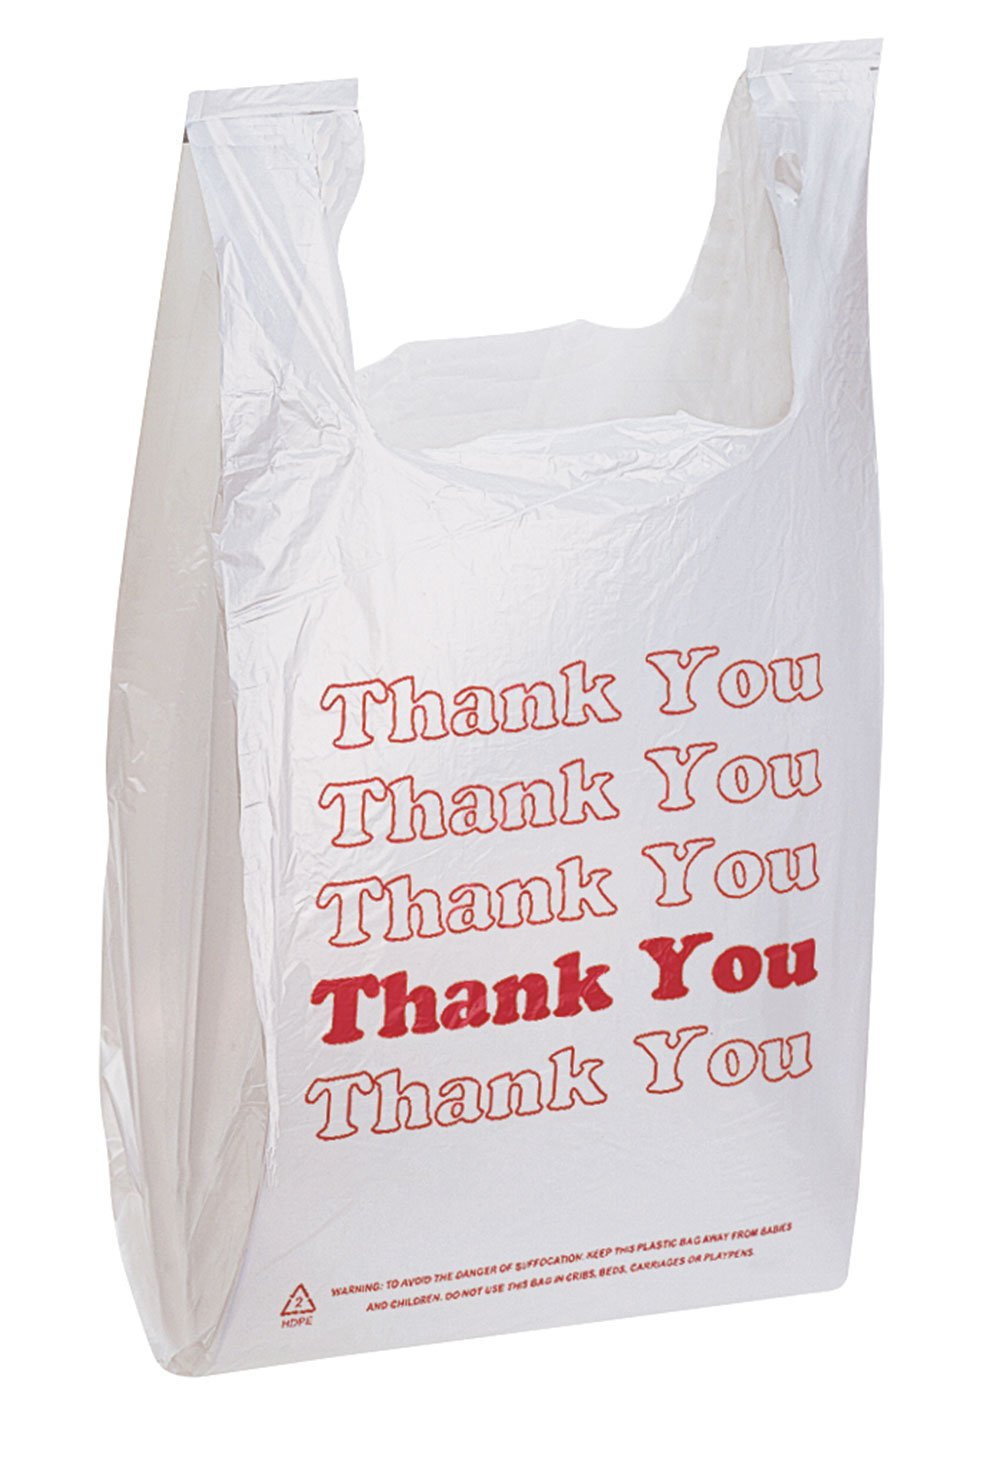 White Thank You Bags Case of 500-11 ½'' x 6'' x 21'' - Thickness .48mil HDPE- Standard Supermarket Size